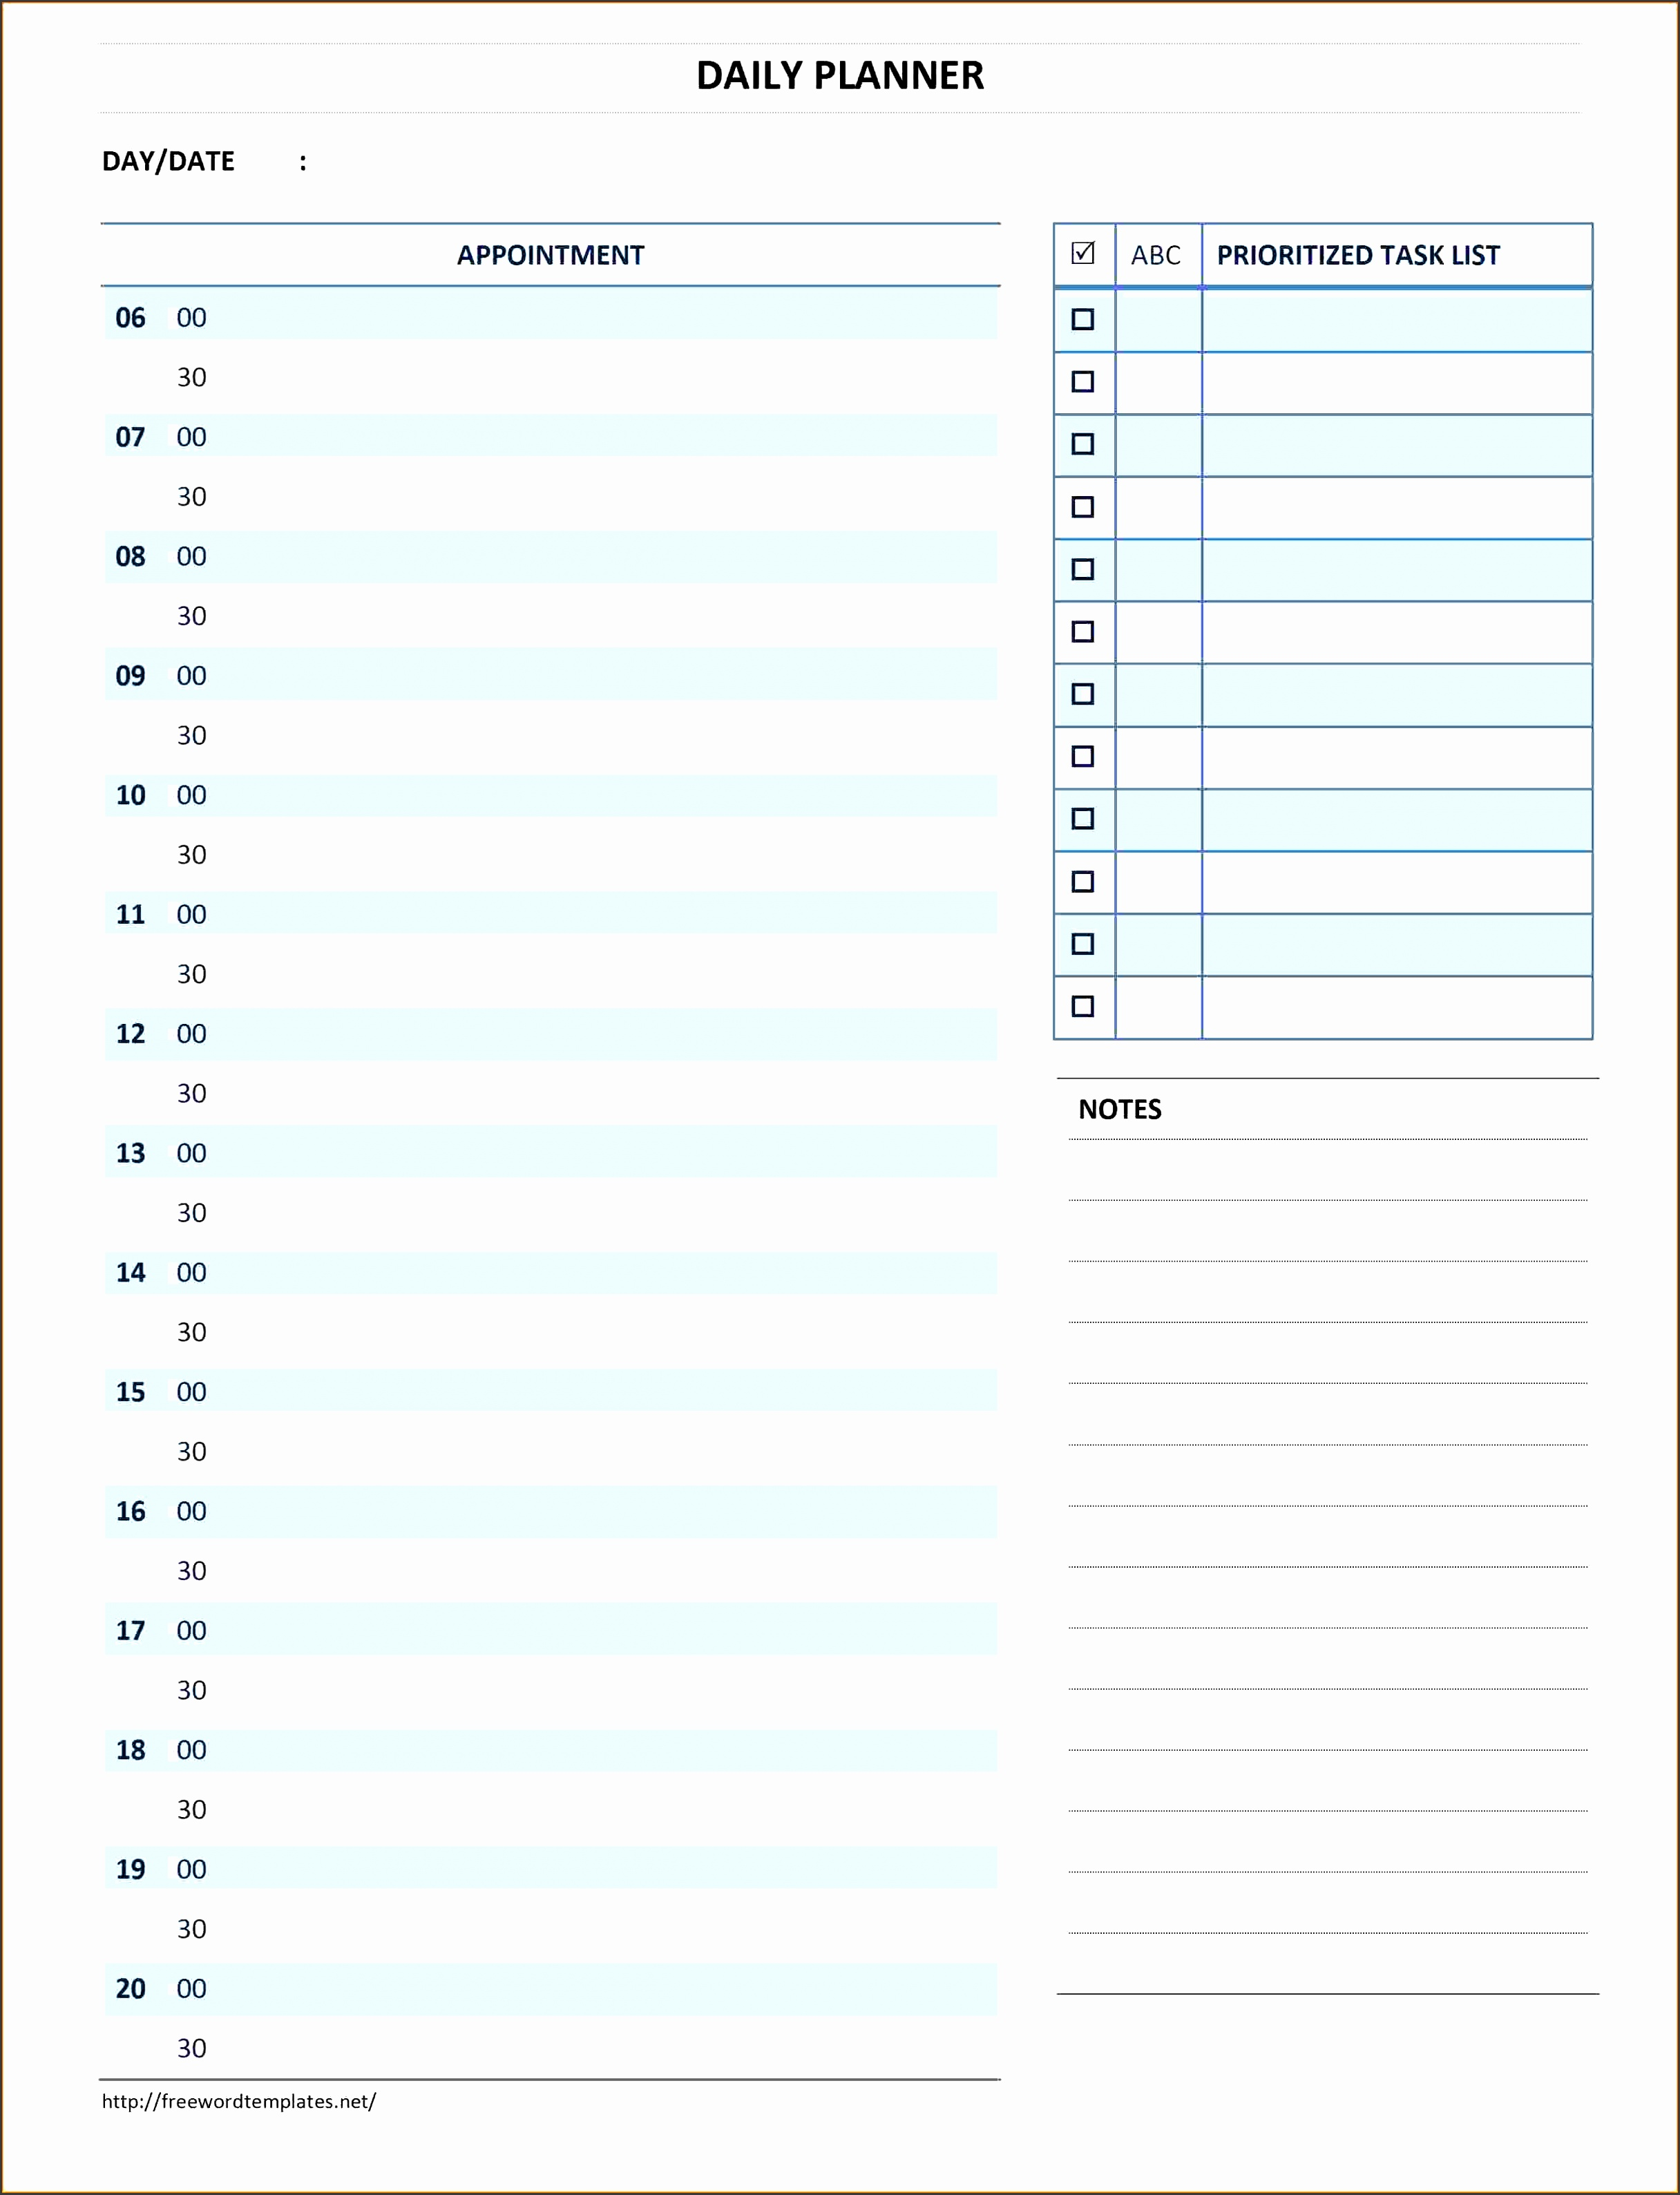 5 Daily Schedule Template Downloadable For Free | SampleTemplatess  Daily Routine Chart Template